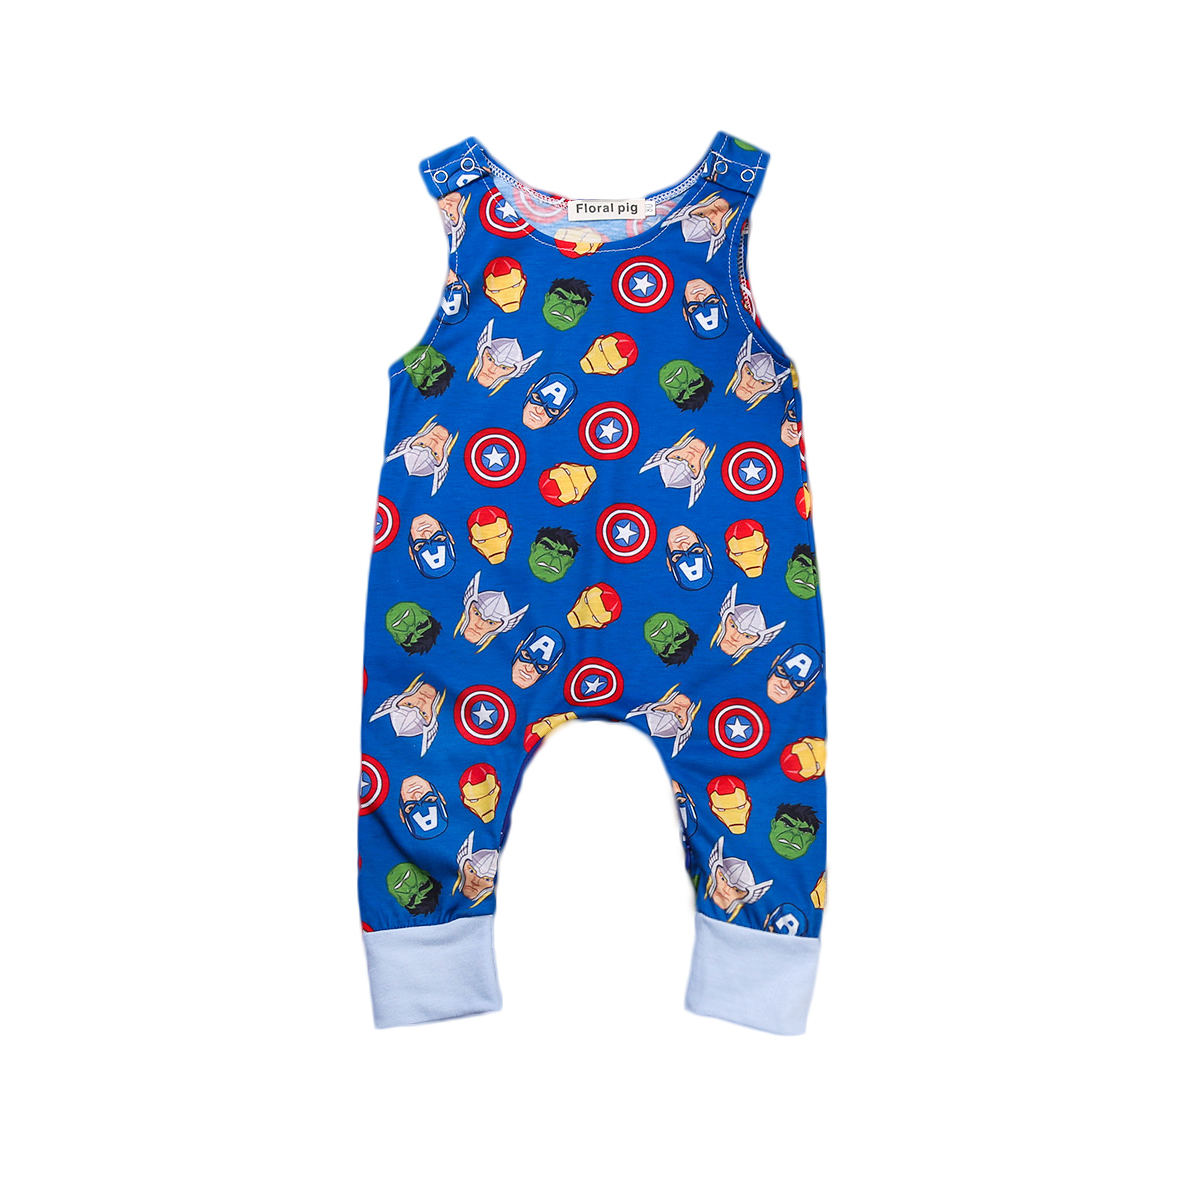 2017 Summer Newborn Baby Boy Girl Sleeveless Carton Pattern Romper Jumpsuit One Pieces Cotton ...